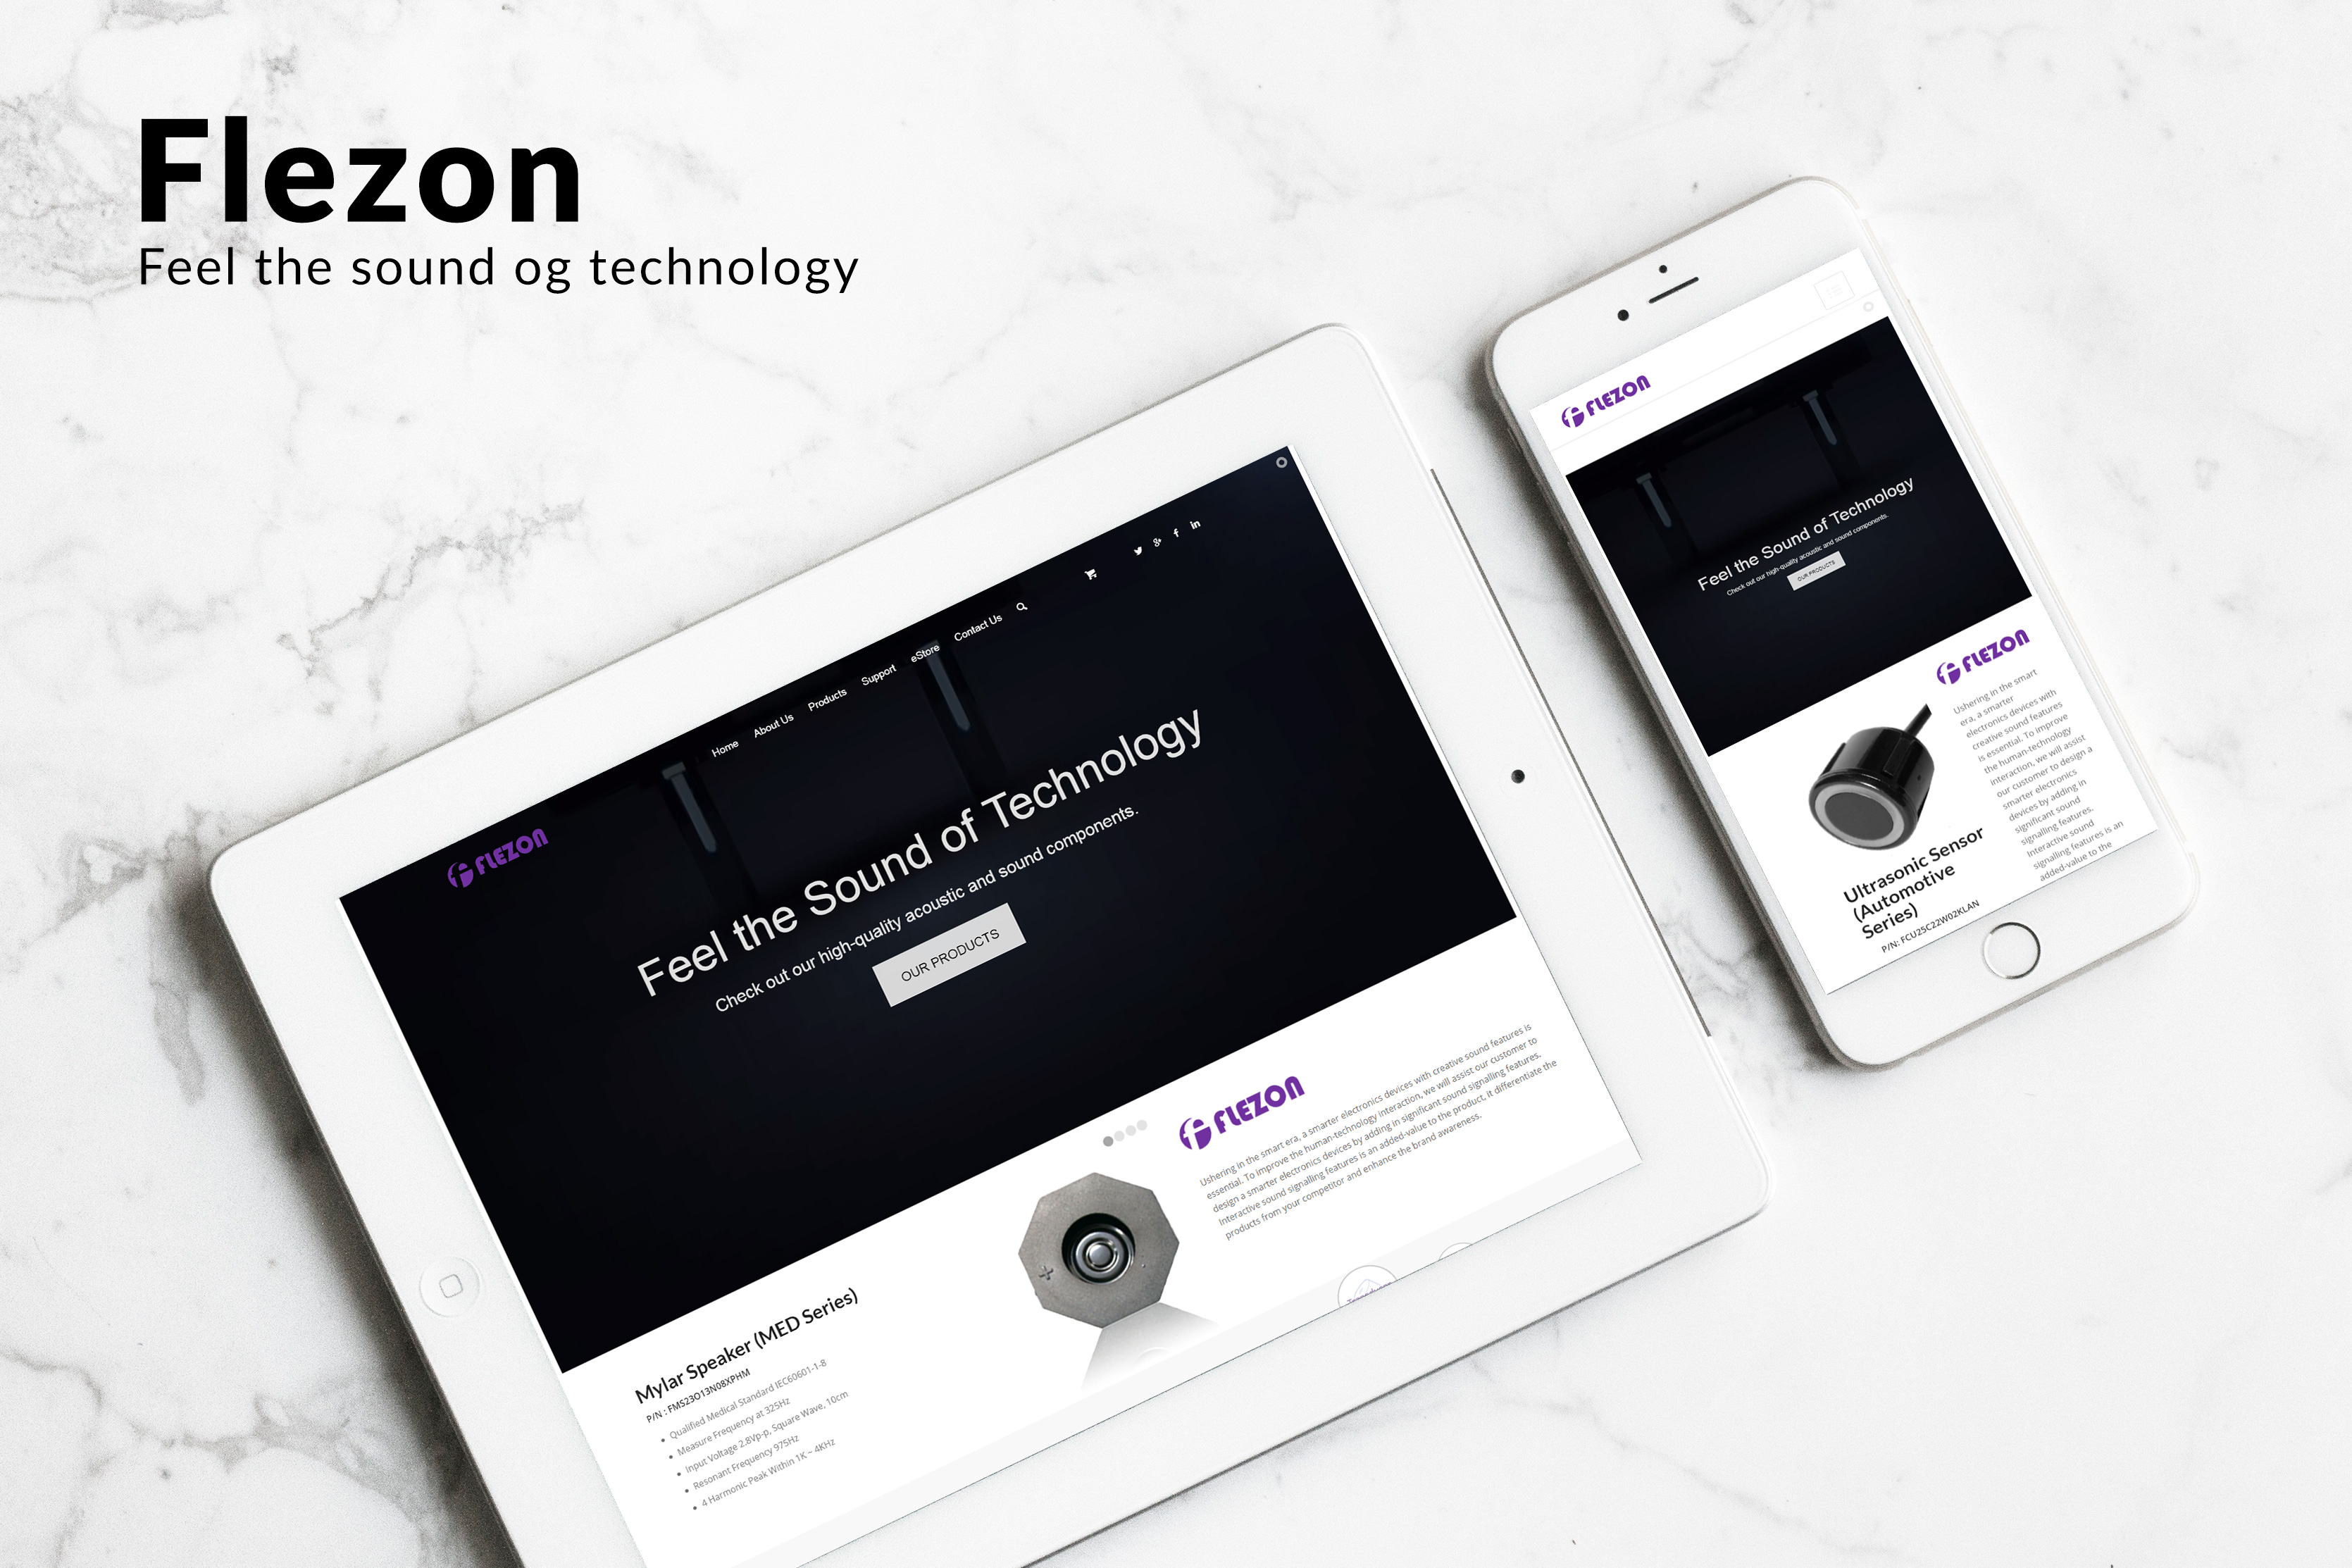 flezon-website-designing-3